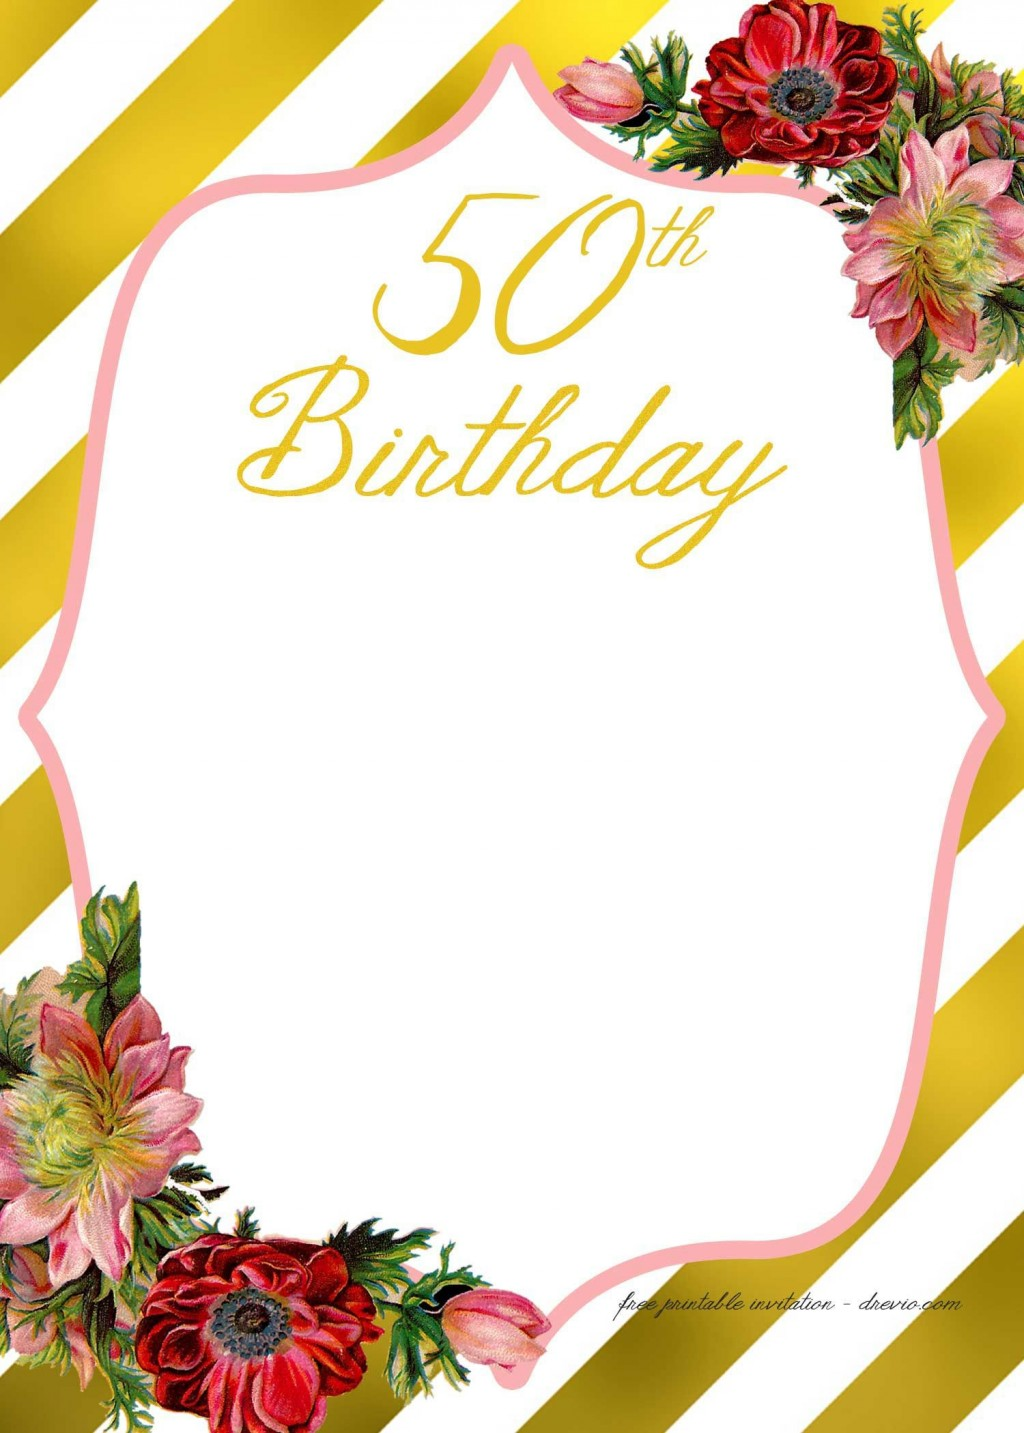 008 Simple 60th Birthday Invitation Template High Resolution  Card Free DownloadLarge